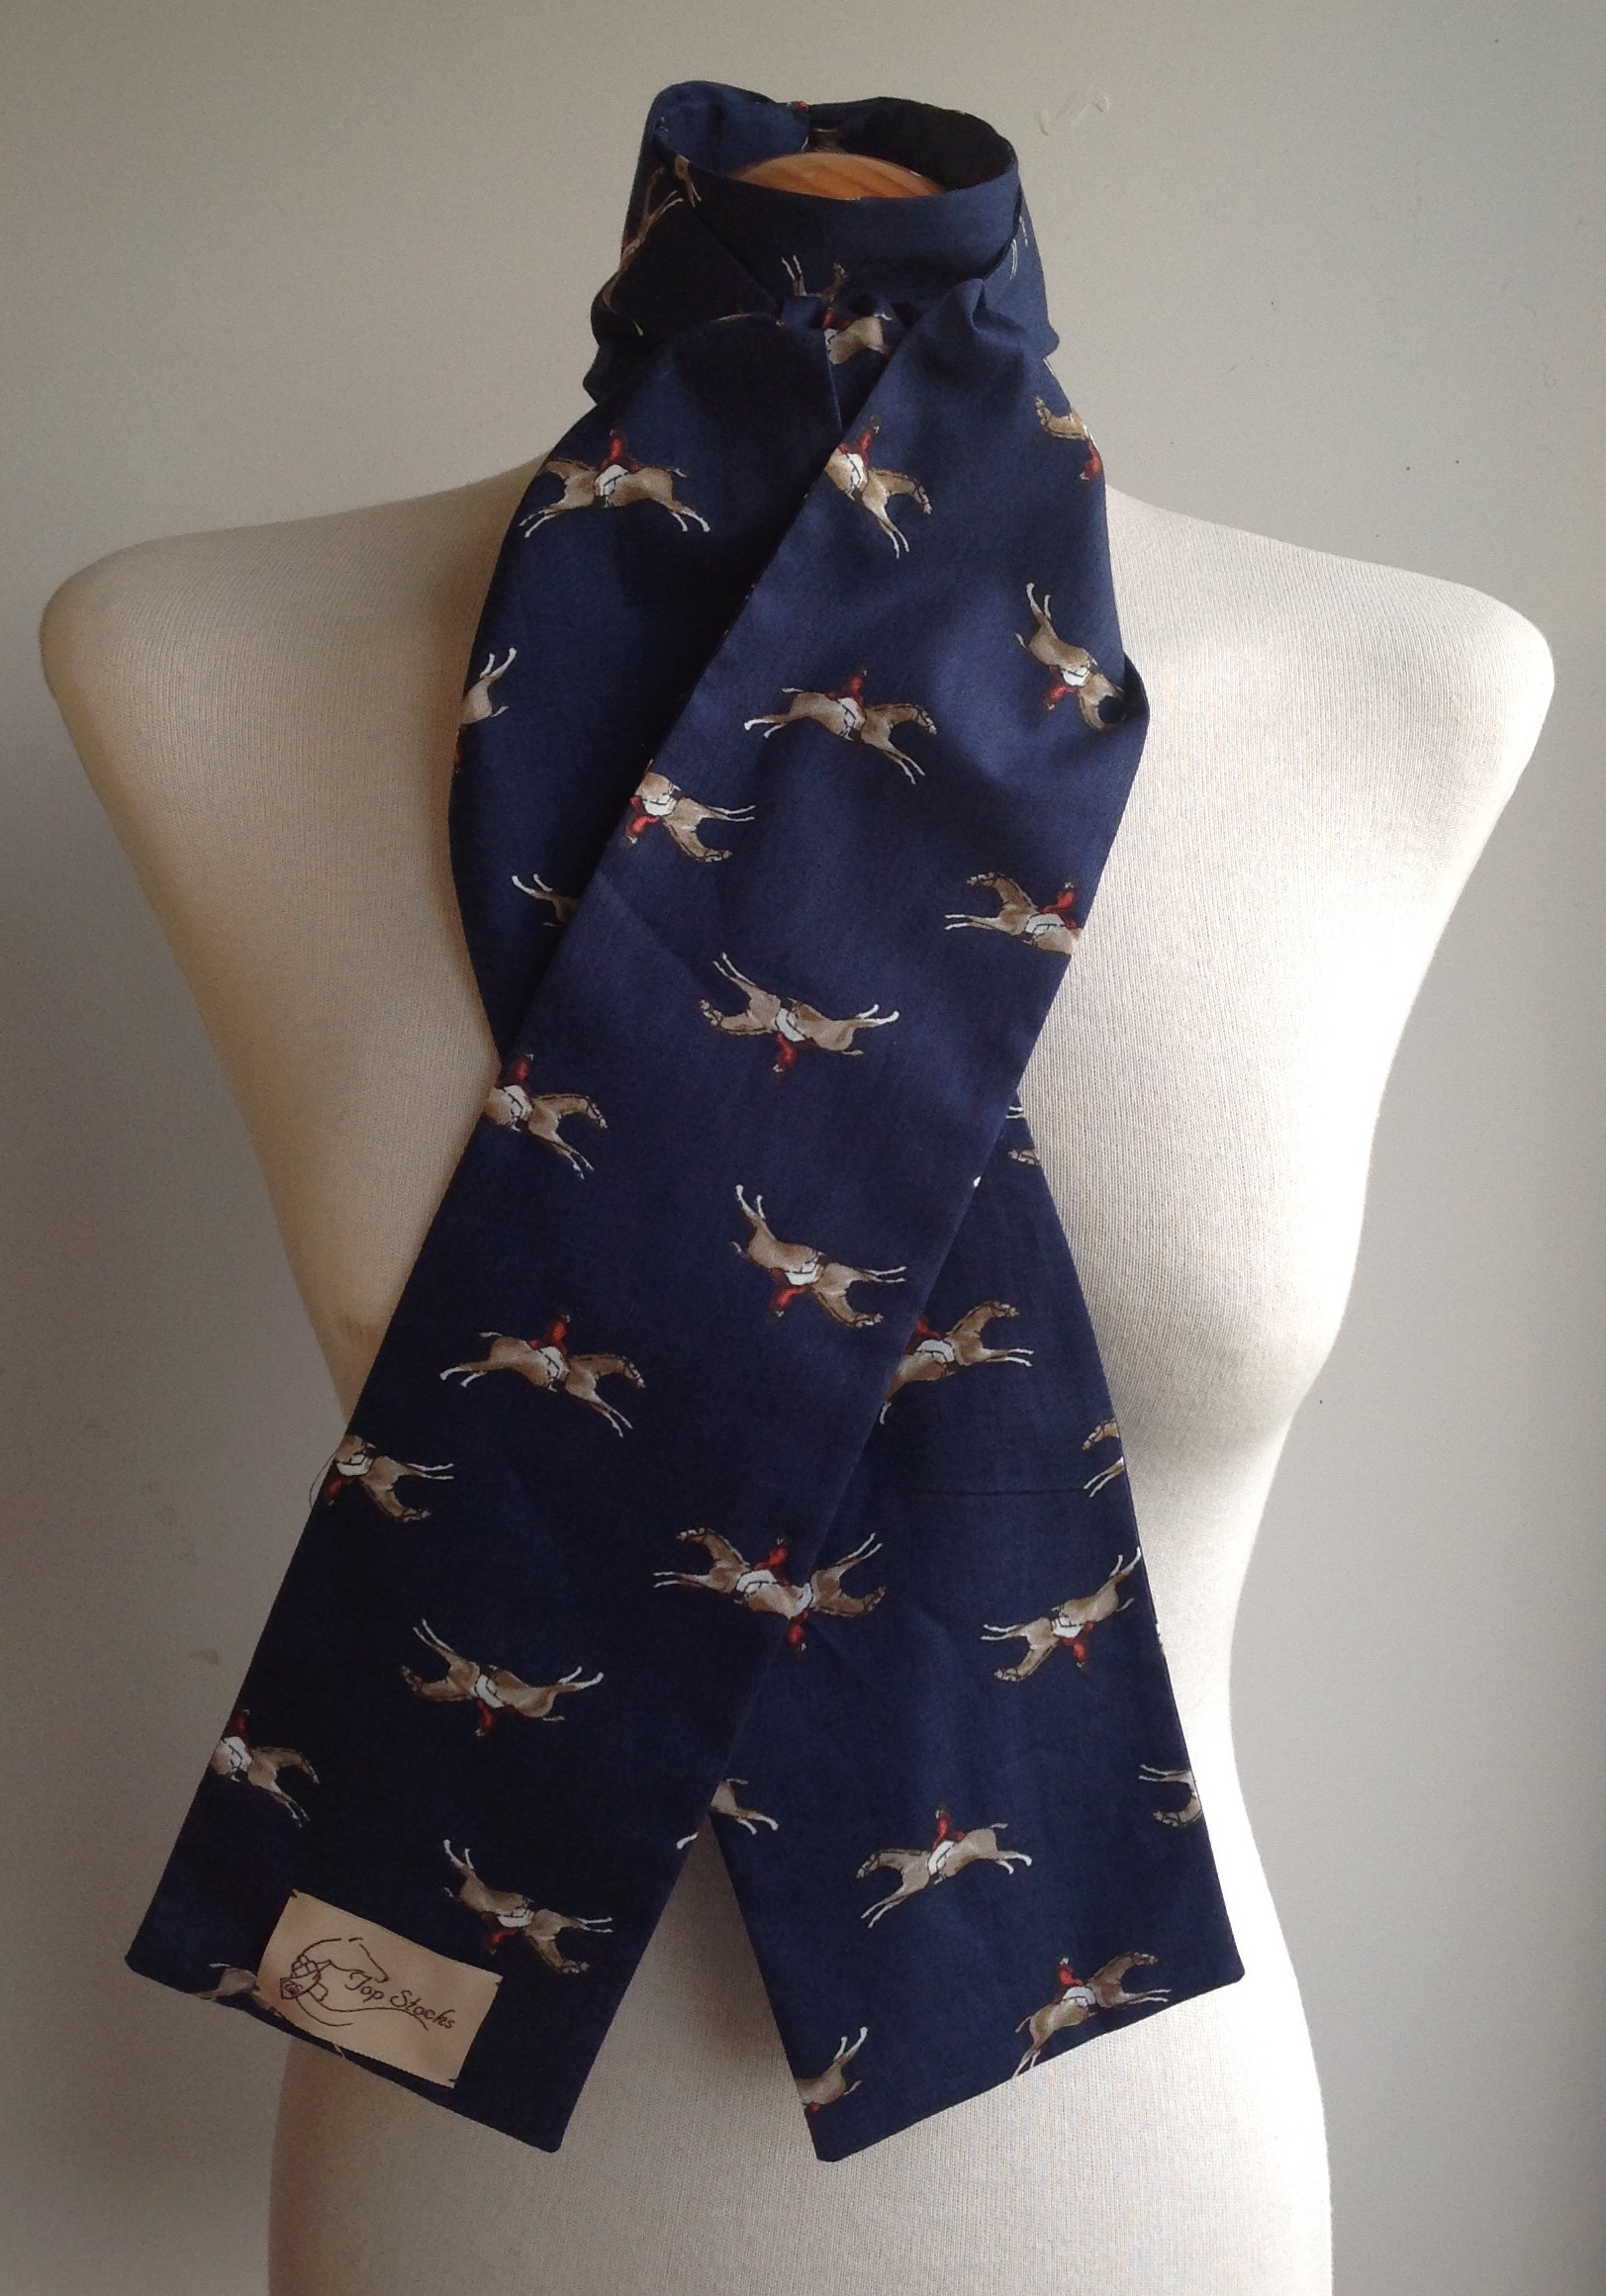 Shaped to tie 100% cotton riding stock - Gallop navy